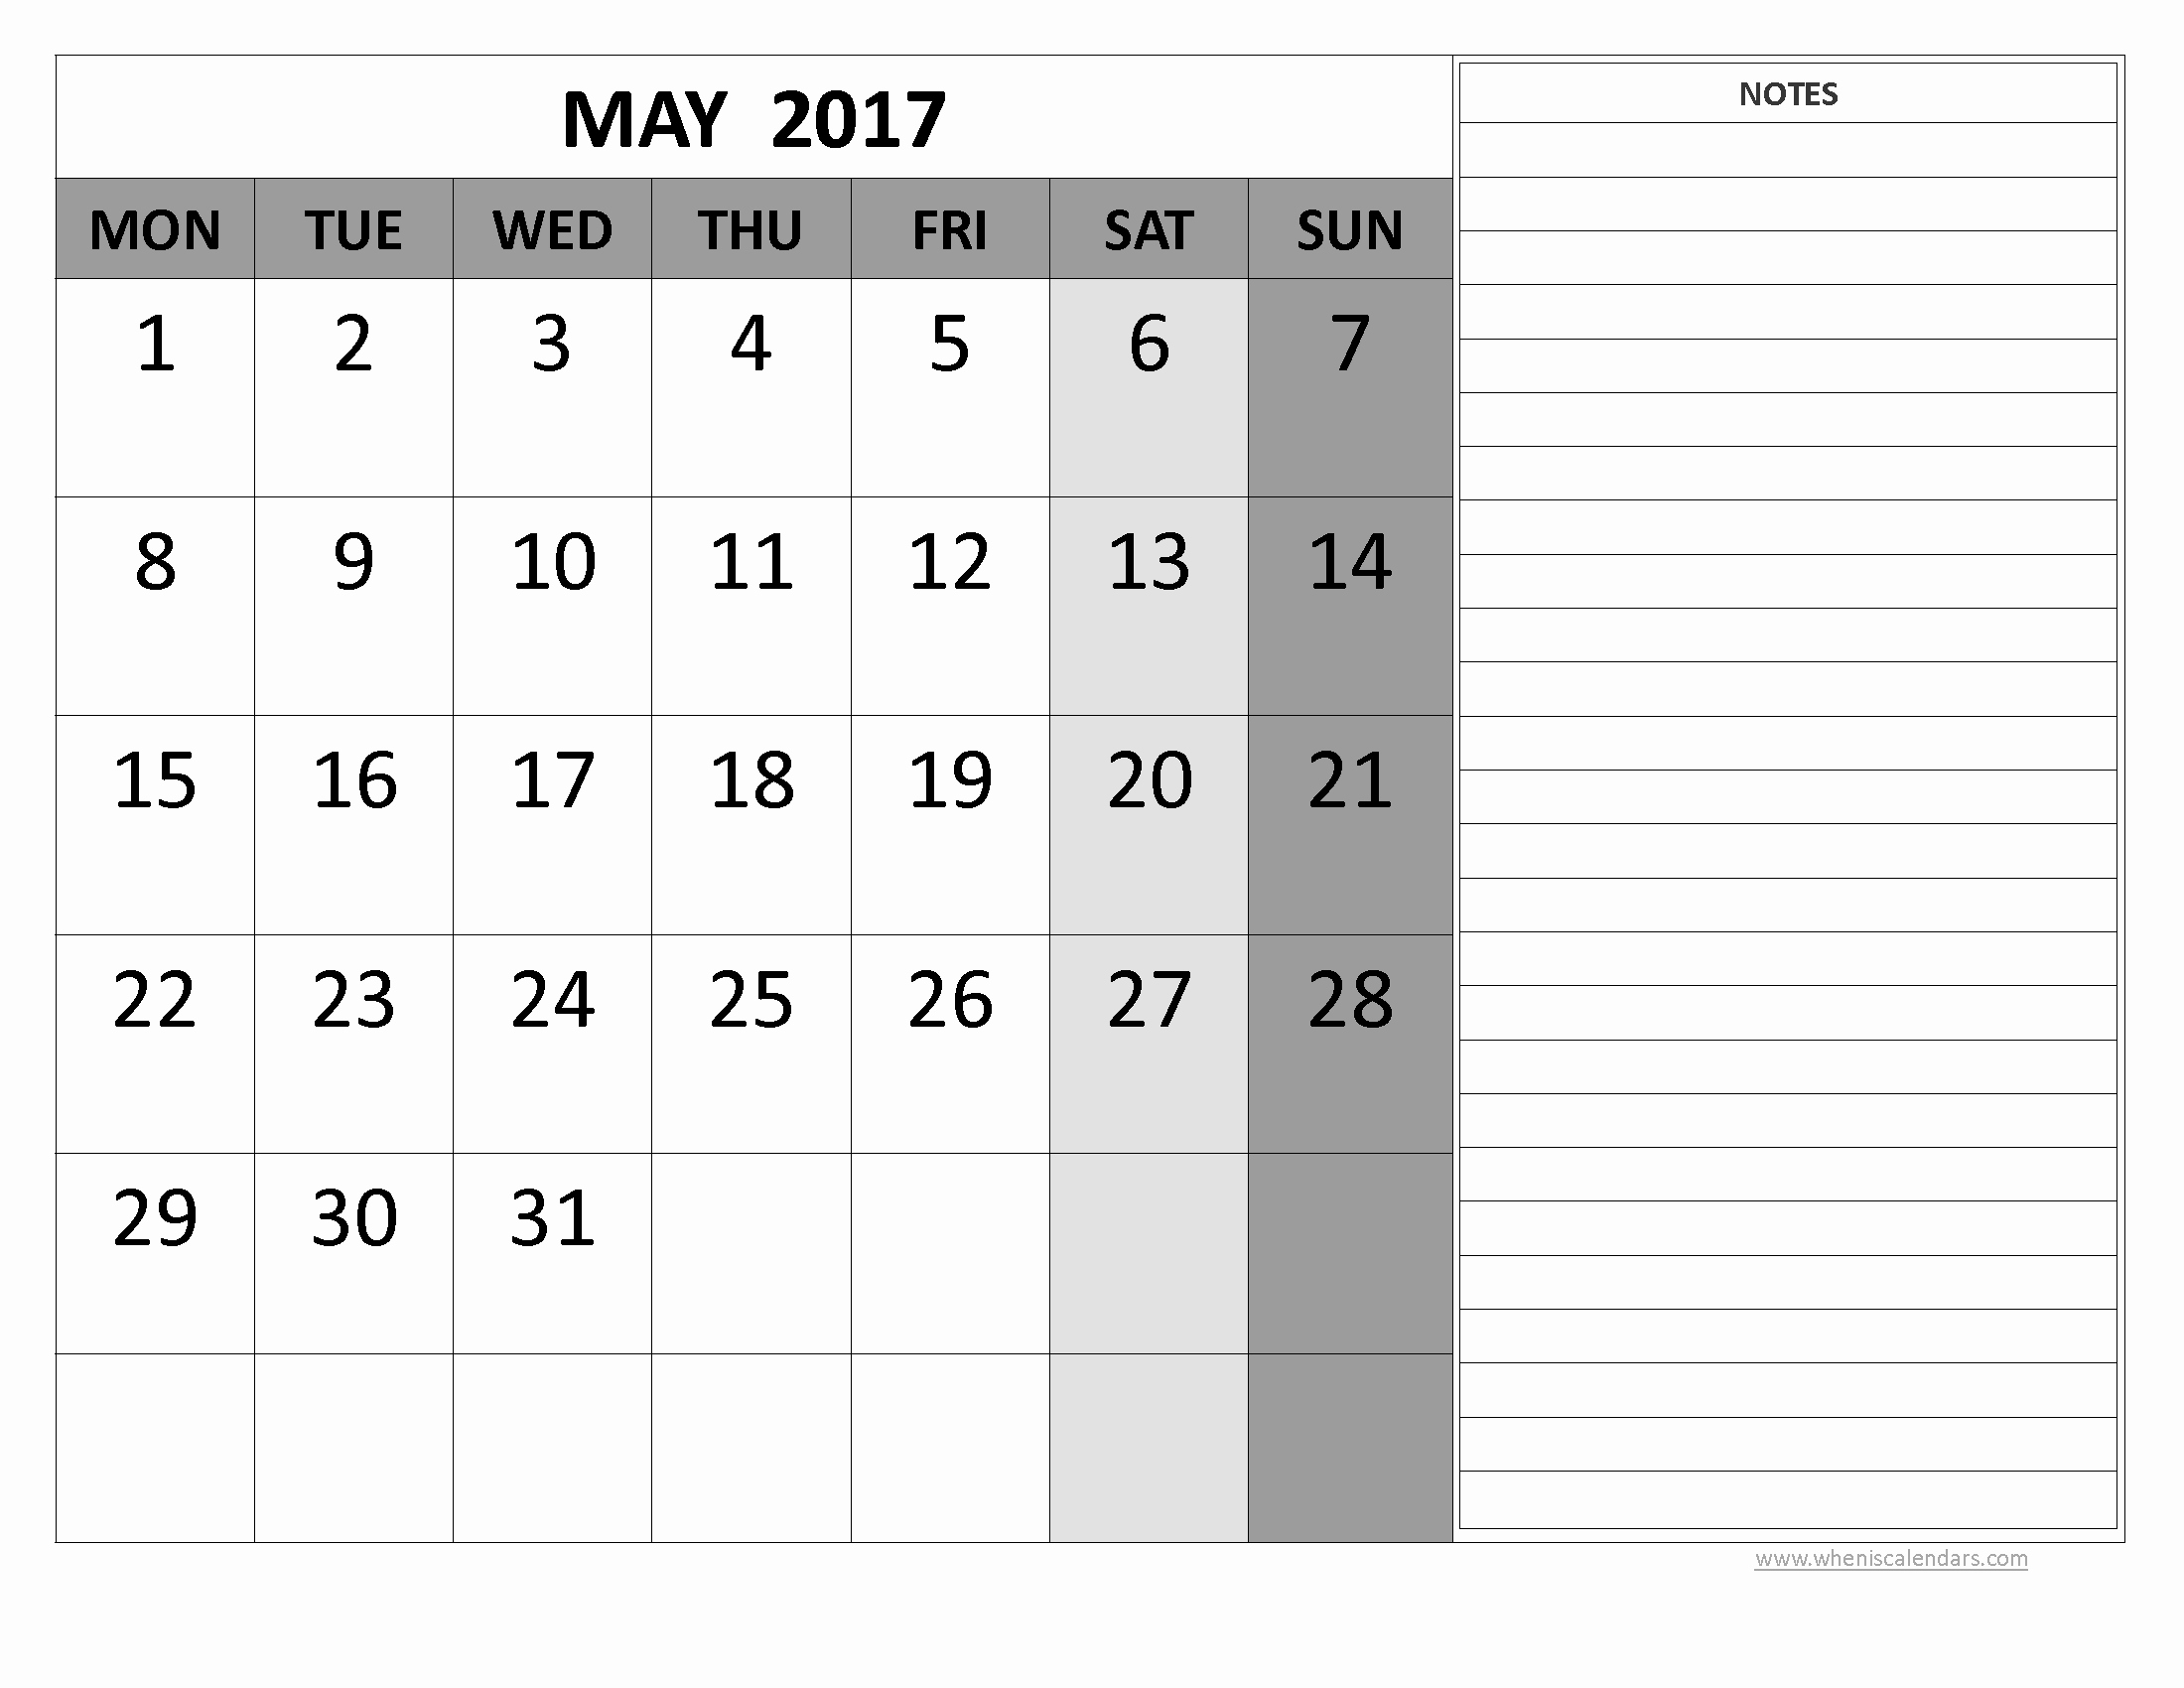 2017 Calendar Template with Notes Unique May 2017 Calendar Word